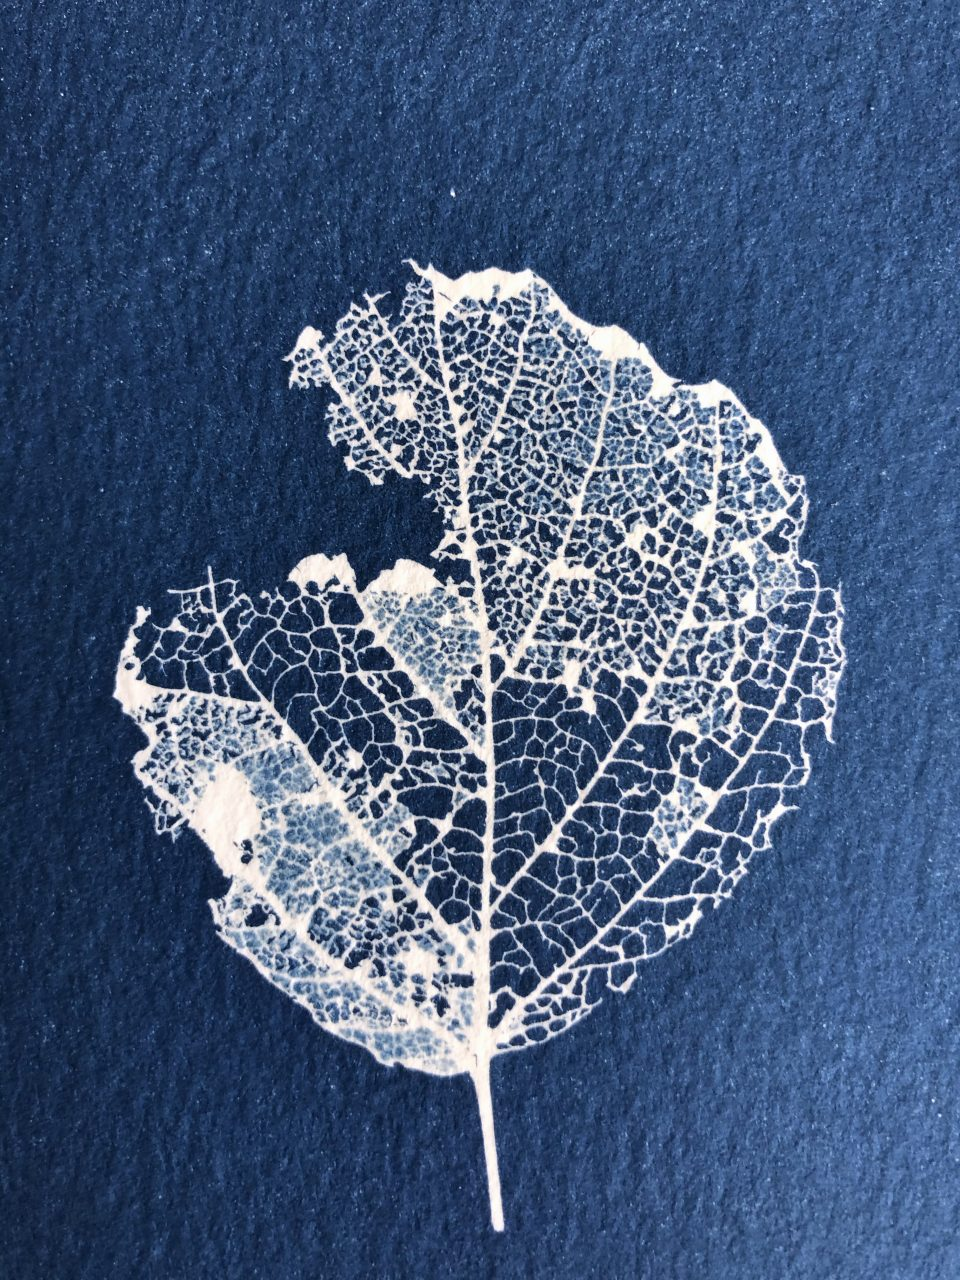 Close-up photo of a finished cyanotype print shows the intricate details of the leaf skeleton and the texture of the watercolor paper.